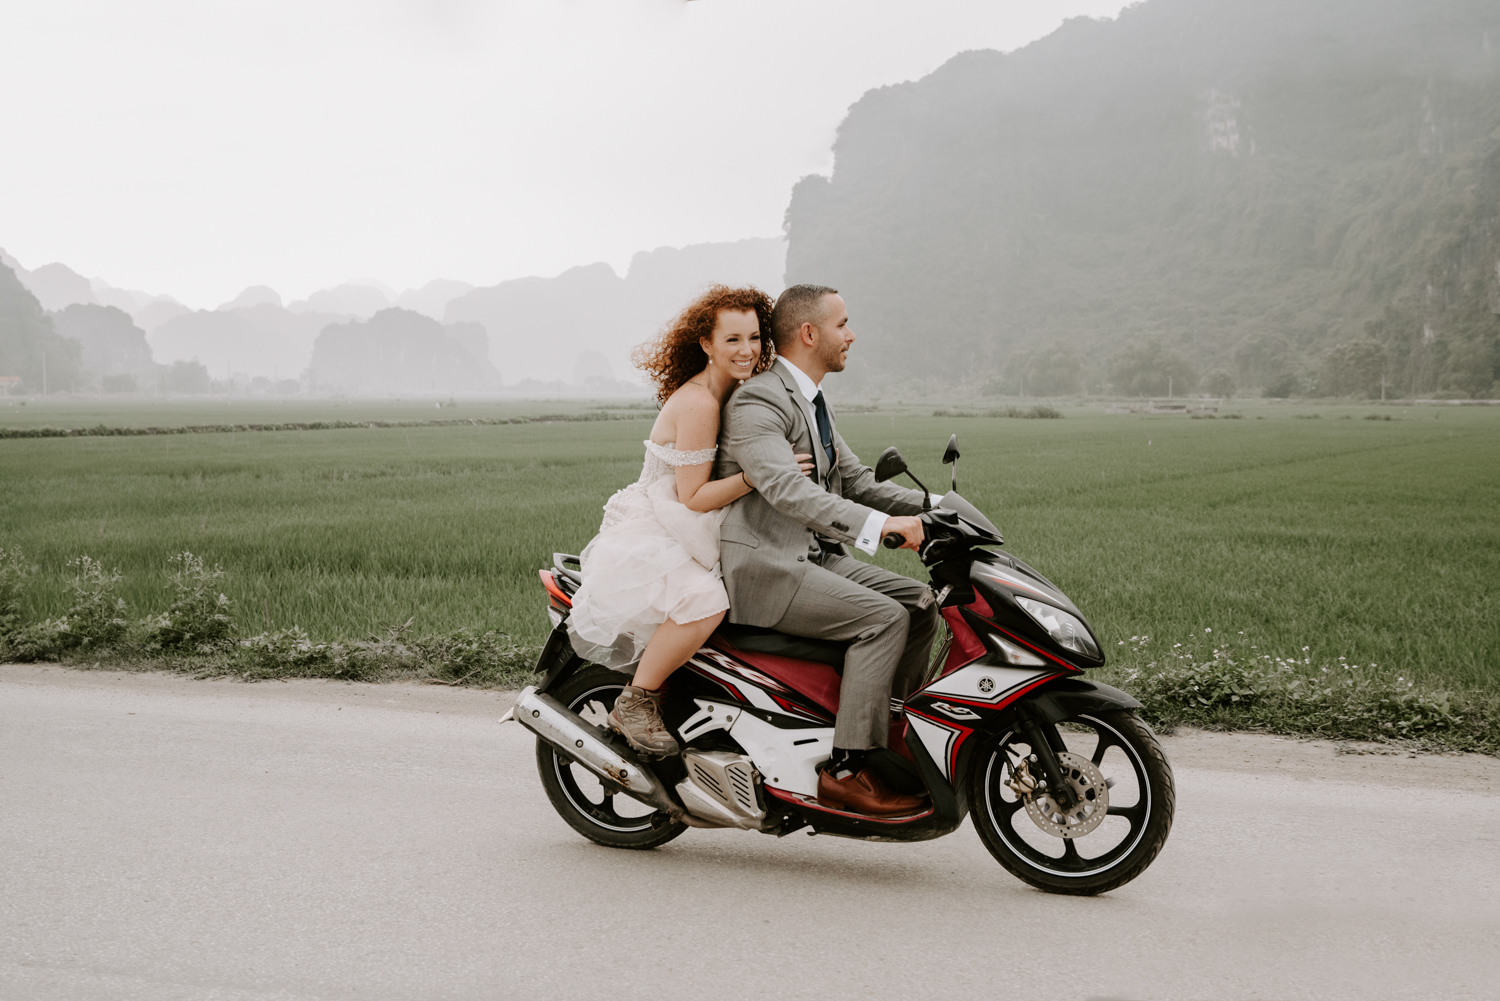 bride and groom ride motorbike in Vietnam